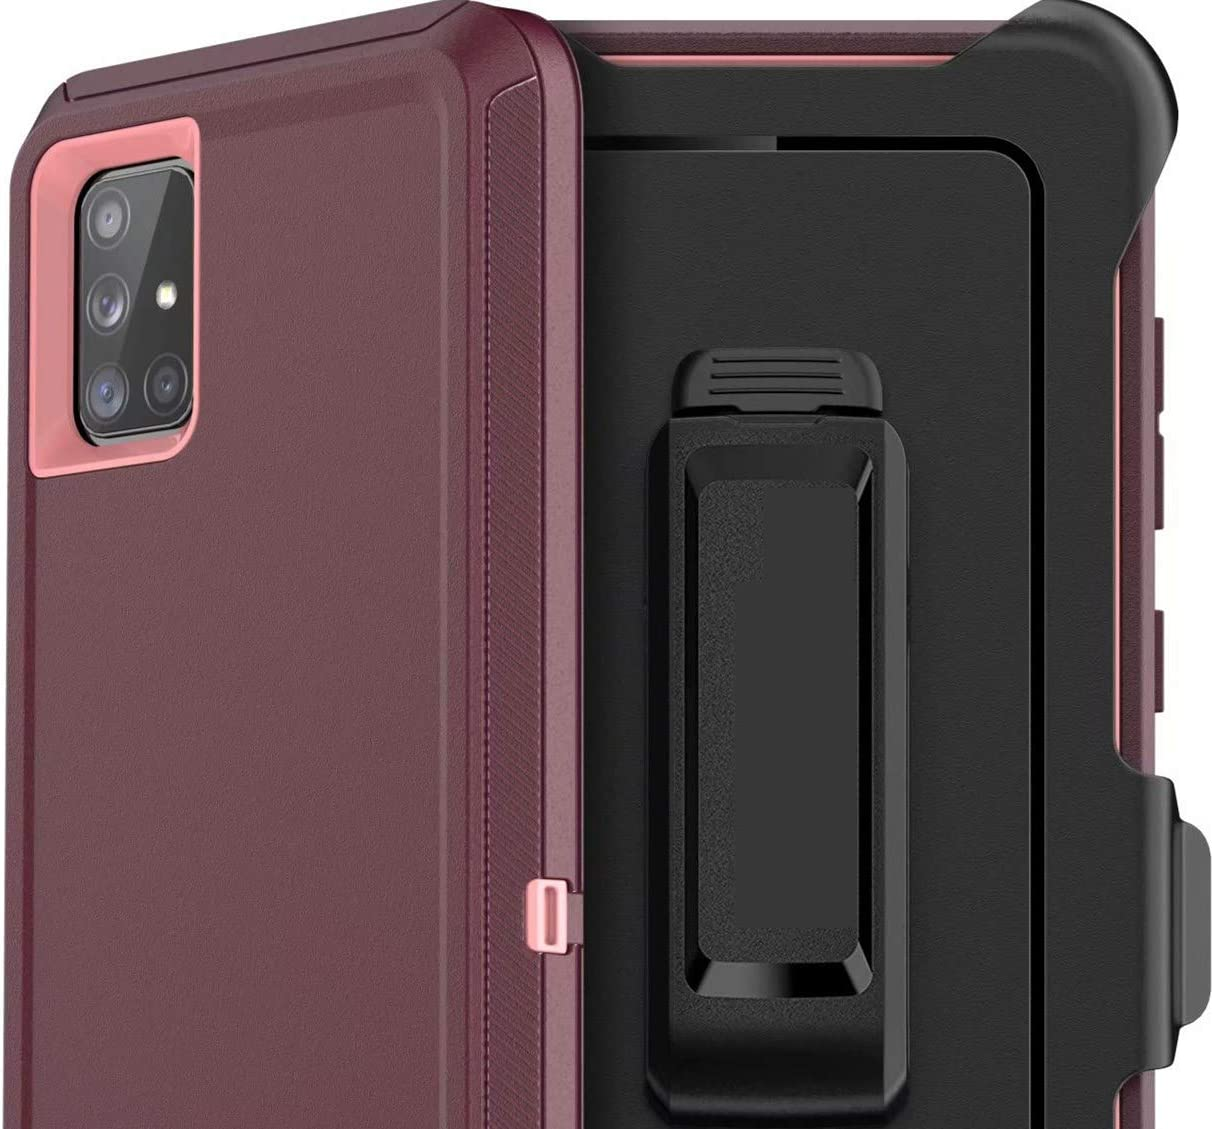 HIQUE Case for Samsung Galaxy S20 FE (Fan Edtion) 5G,[NO Screen Protector][Heavy Duty][Drop Protection] Tough Case for S20 FE Multiple Layers - with Holster/Clip Burgundy